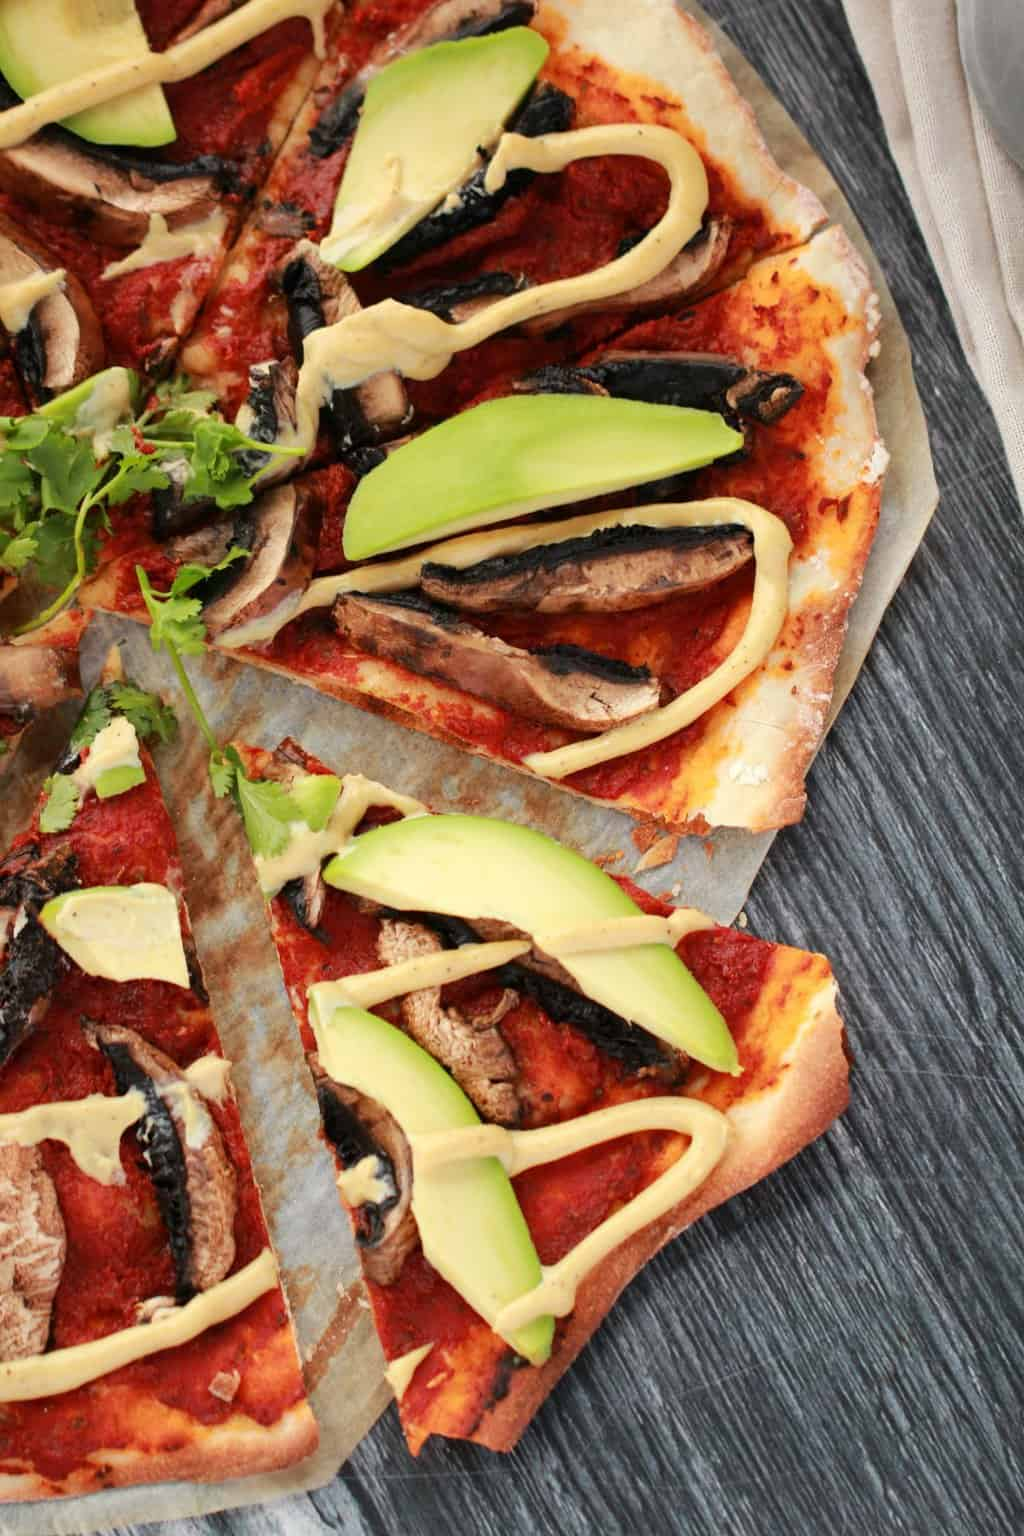 Sliced homemade pizza topped with tomato sauce, black mushrooms, sliced avocado and drizzled cashew cheese on parchment paper